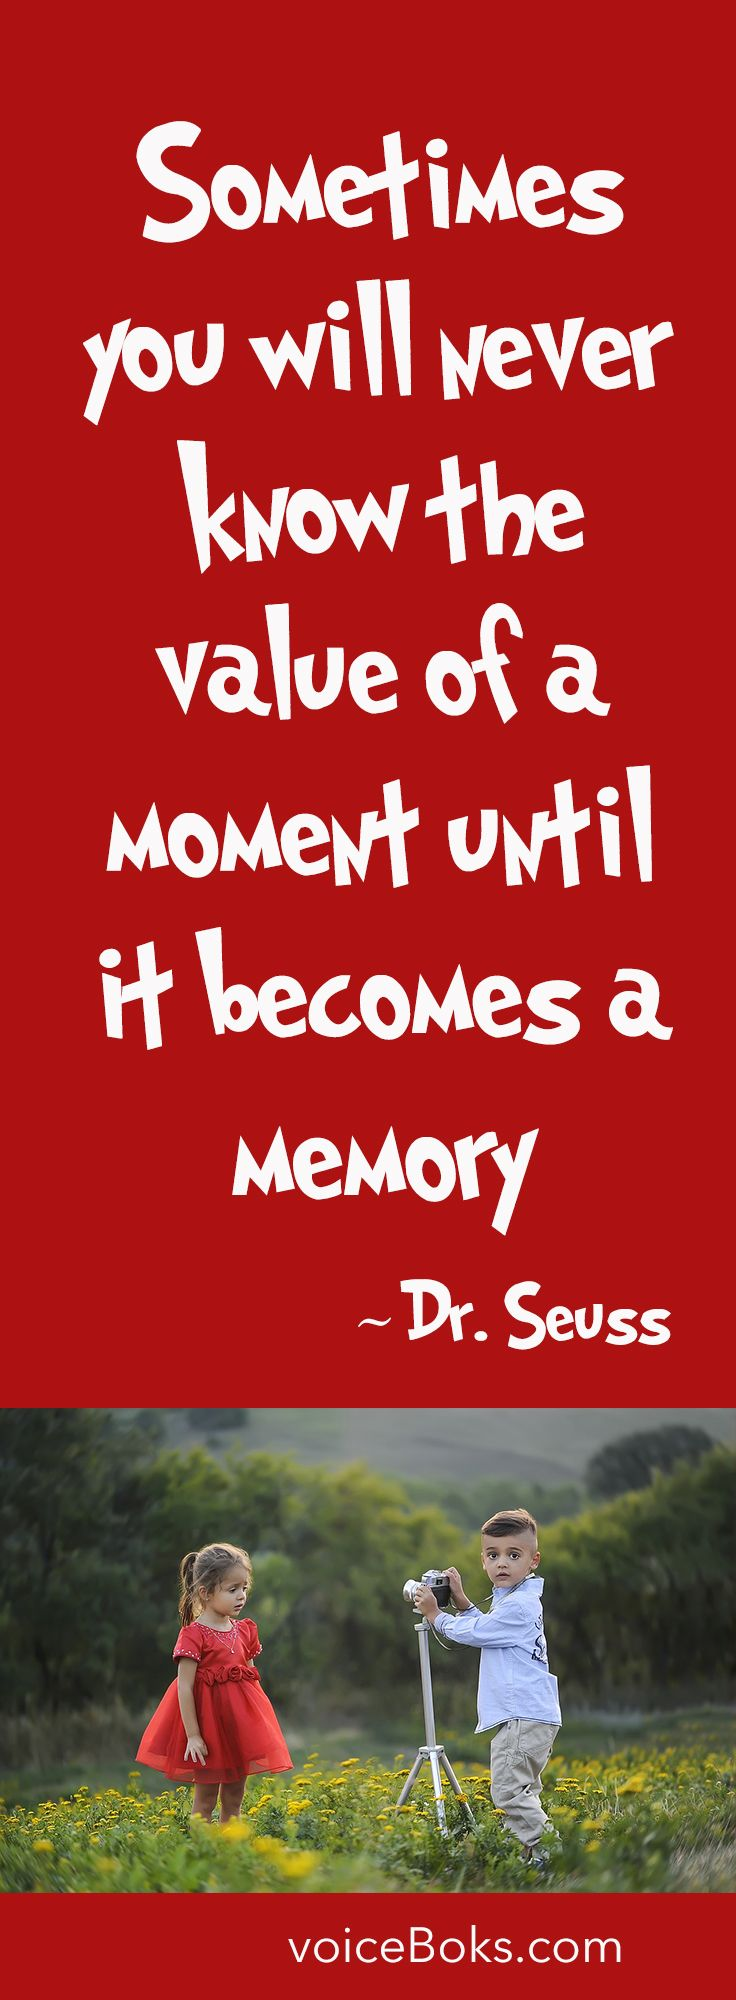 Dr Seuss Love Quotes Best 25 Famous Dr Seuss Quotes Ideas On Pinterest  Famous Quotes